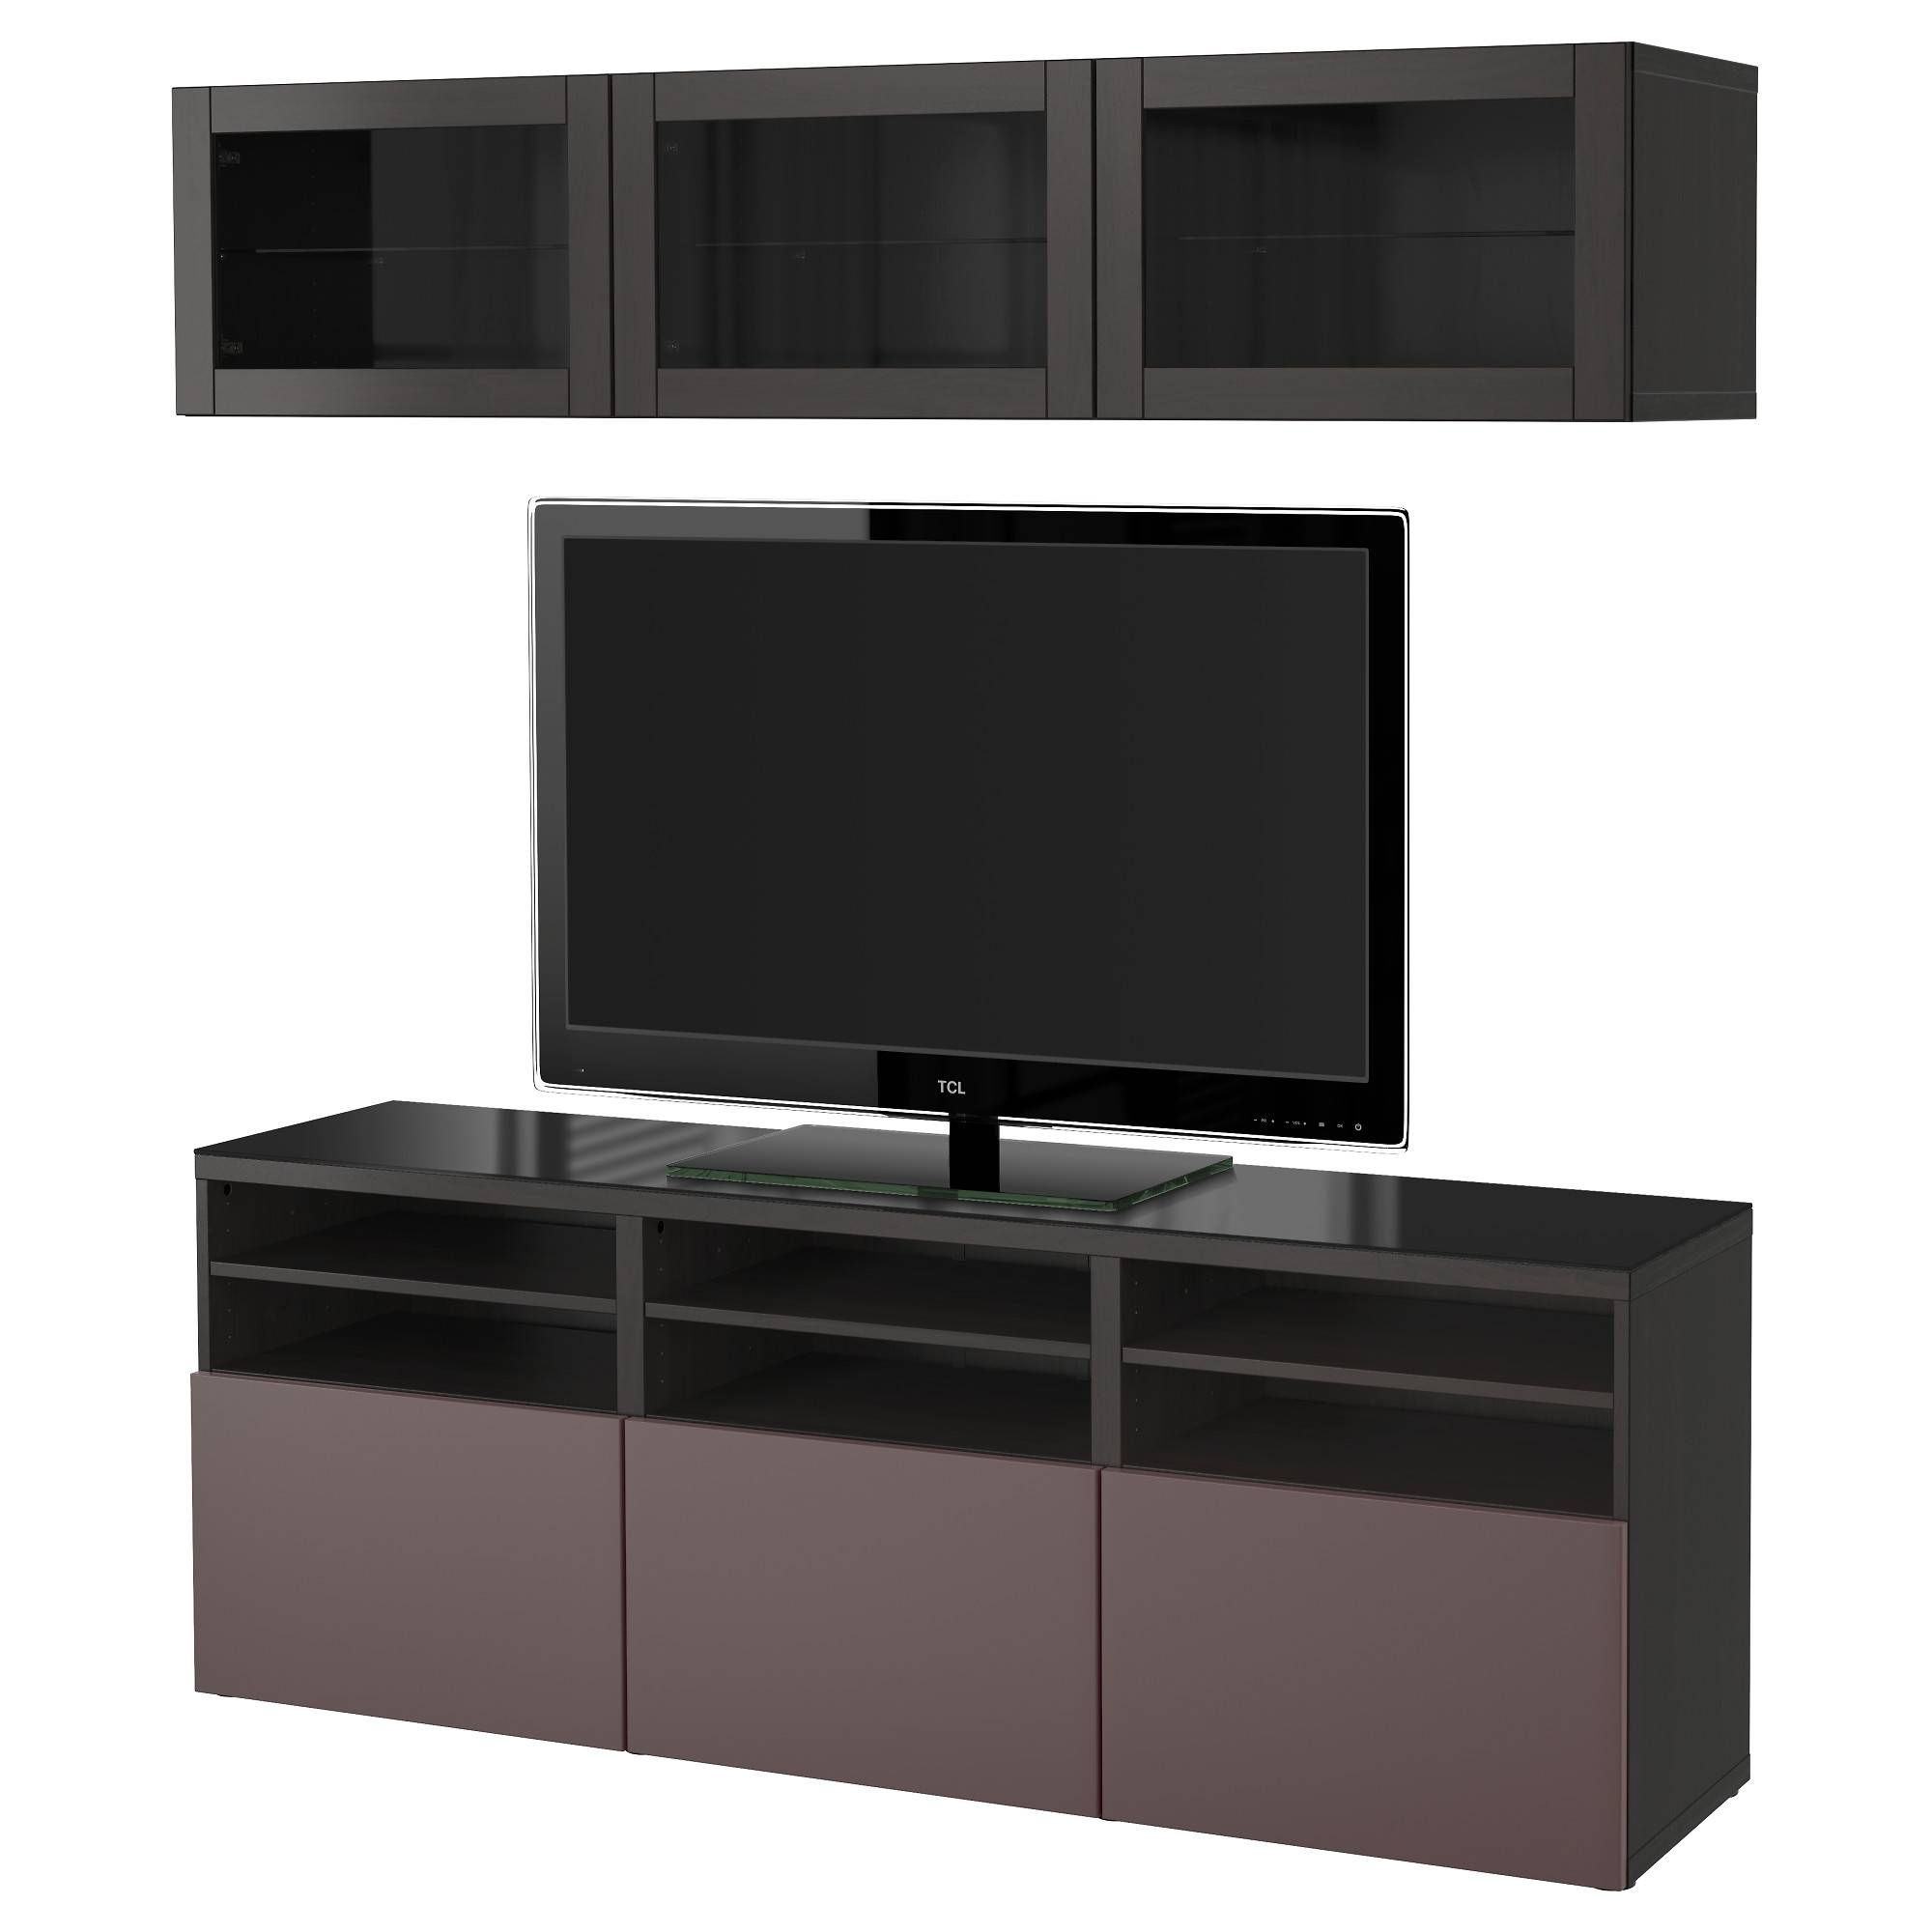 Large Tv Cabinets & Units   Ikea Dublin With Regard To Glass Tv Cabinets (View 14 of 15)